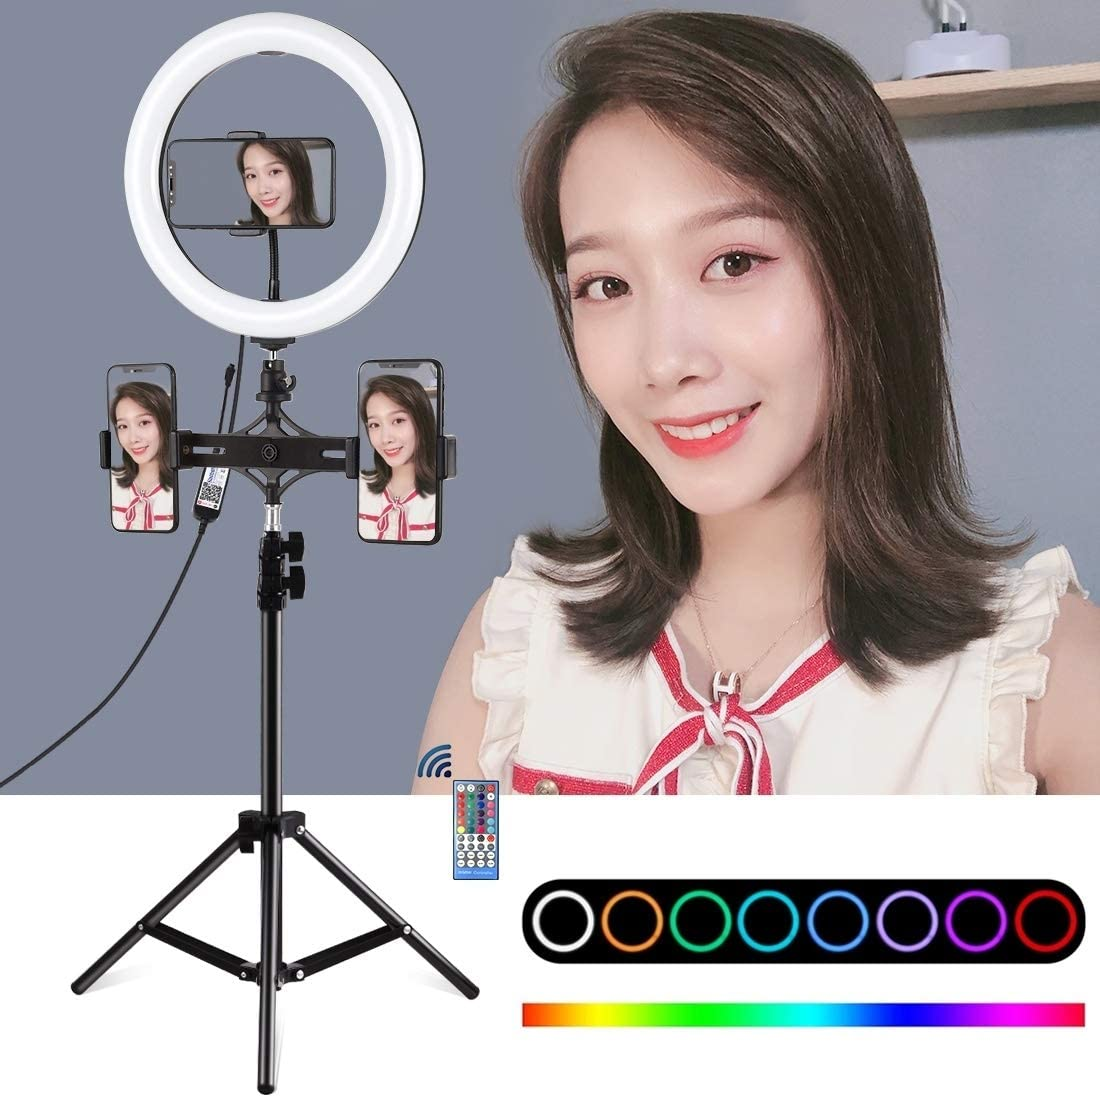 10 inch 26cm Curved Surface RGBW LED Ring Vlogging Video Light Live Broadcast Kits with Remote Control /& Phone Clamp Black Dual Phone Brackets Horizontal Holder HUIFANGBU PU419 Tripod Mount